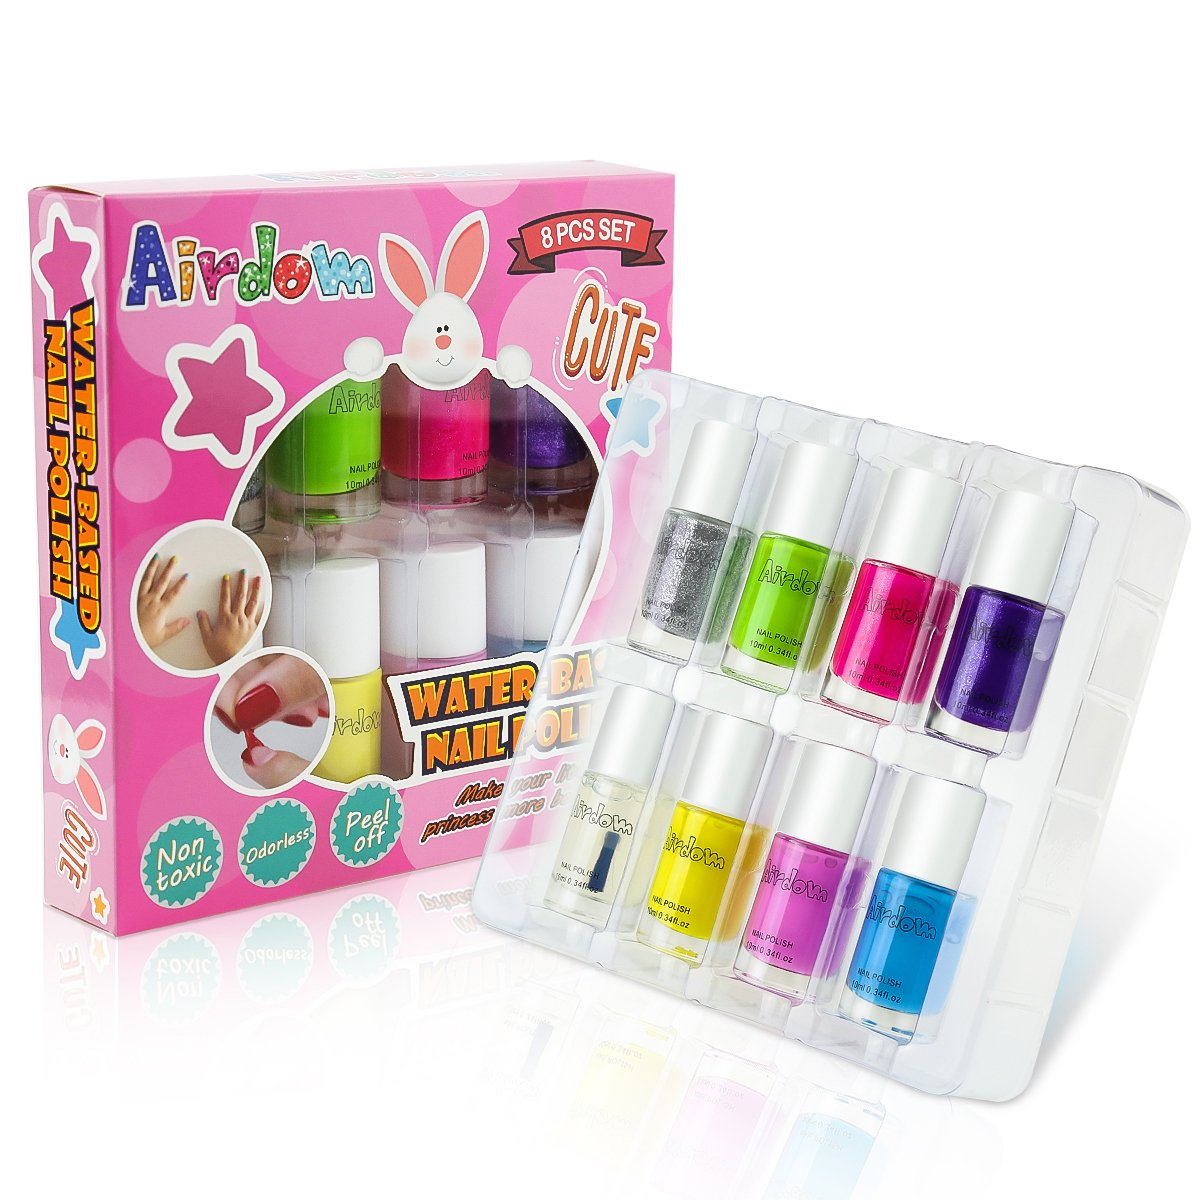 Airdom Non-Toxic Water-Based Kids Nail Polish - Natural Odorless Safe Peel Off Nail Polish Set Quick Dry Nail Polish Gifts Toys Kit for Girls Kids Toddlers Including 7 Colors and 1 Top Coat by Airdom